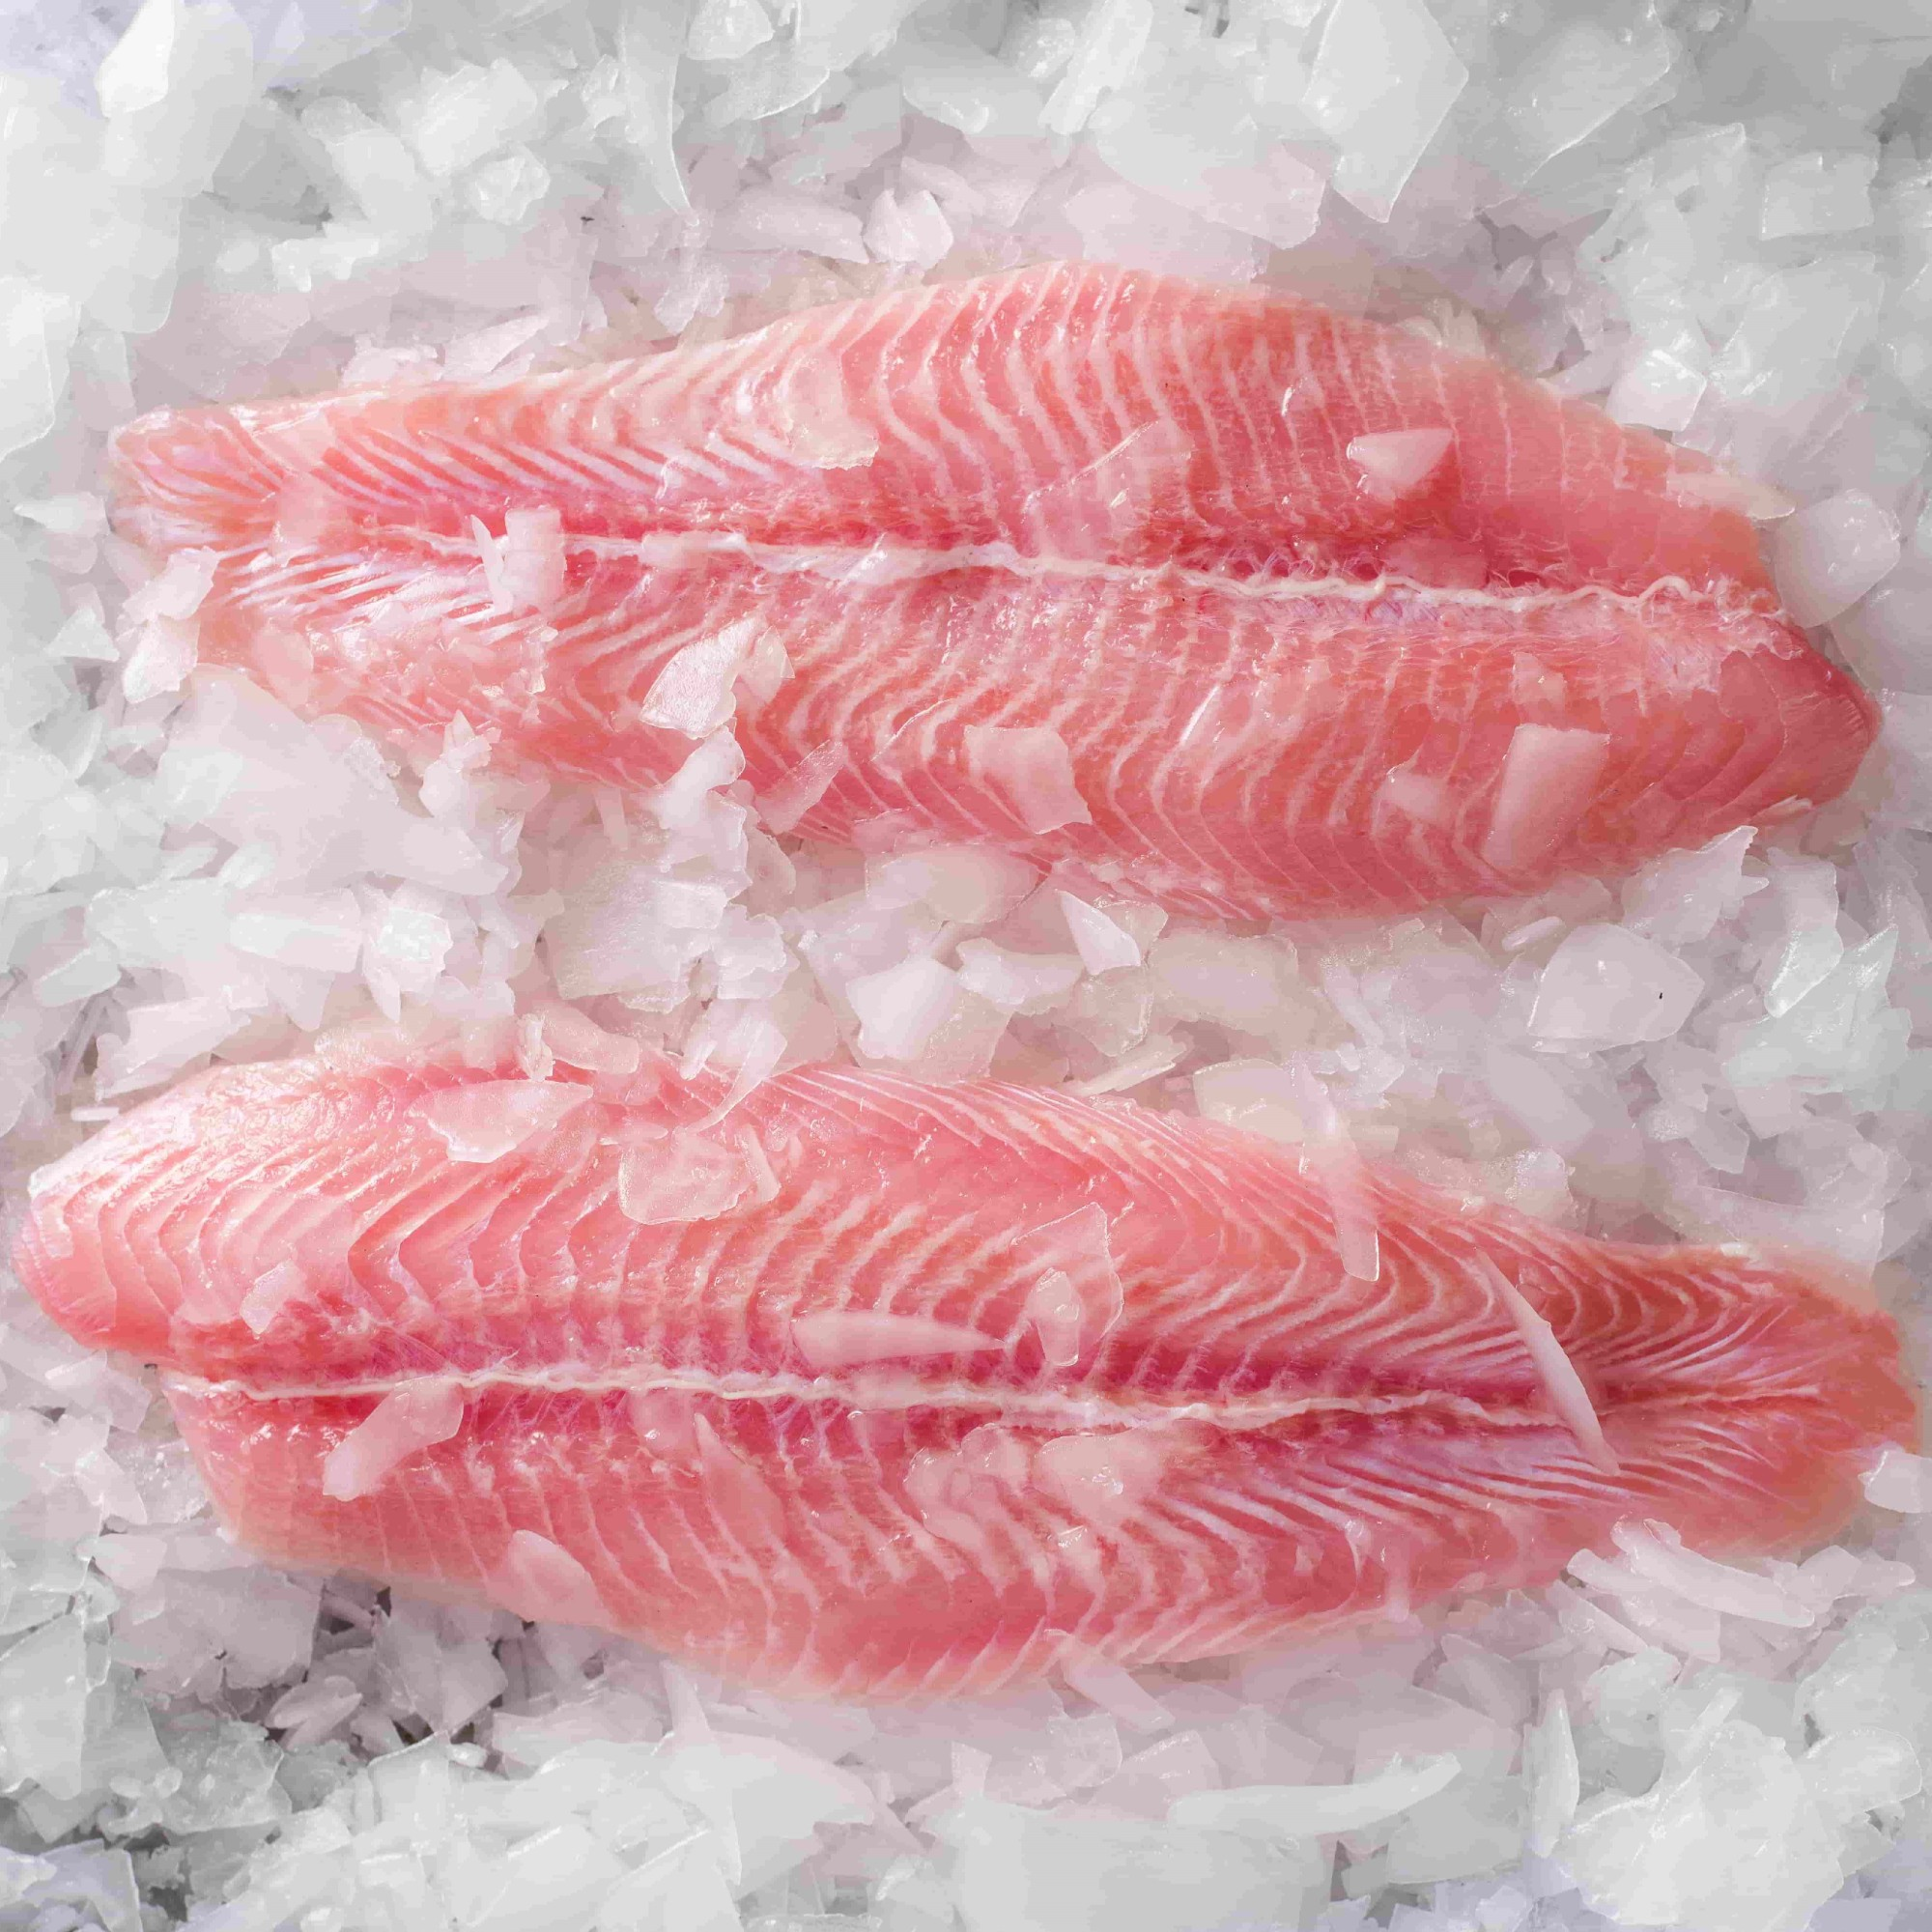 CO Treated Fillets